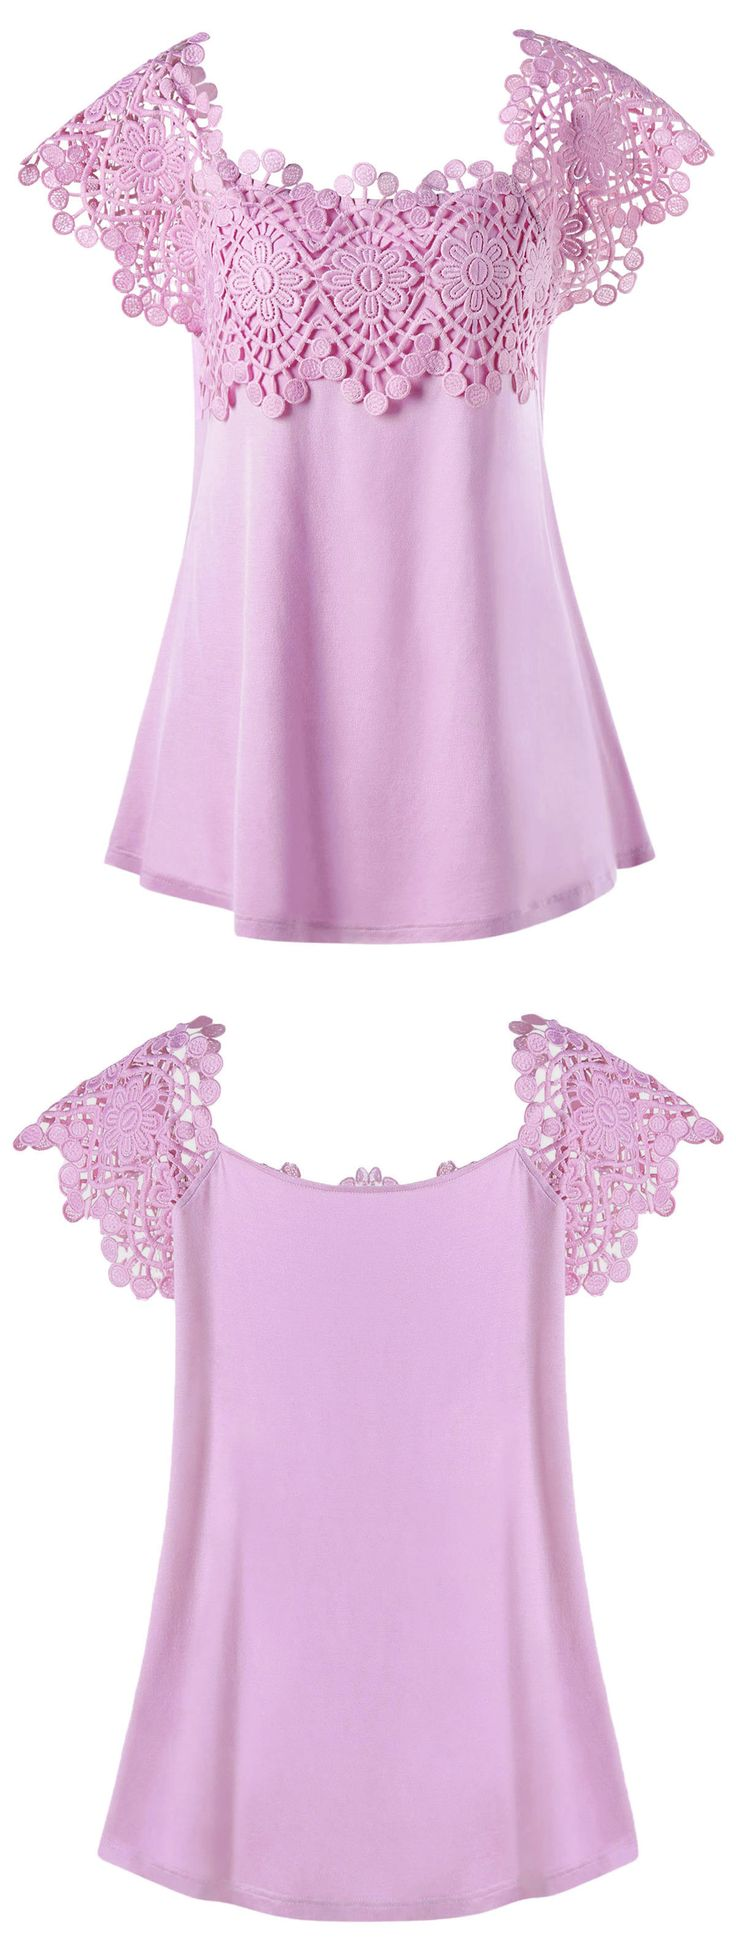 $16.87 Plus Size Lace Trim Cutwork T-shirt - Pinkish Purple